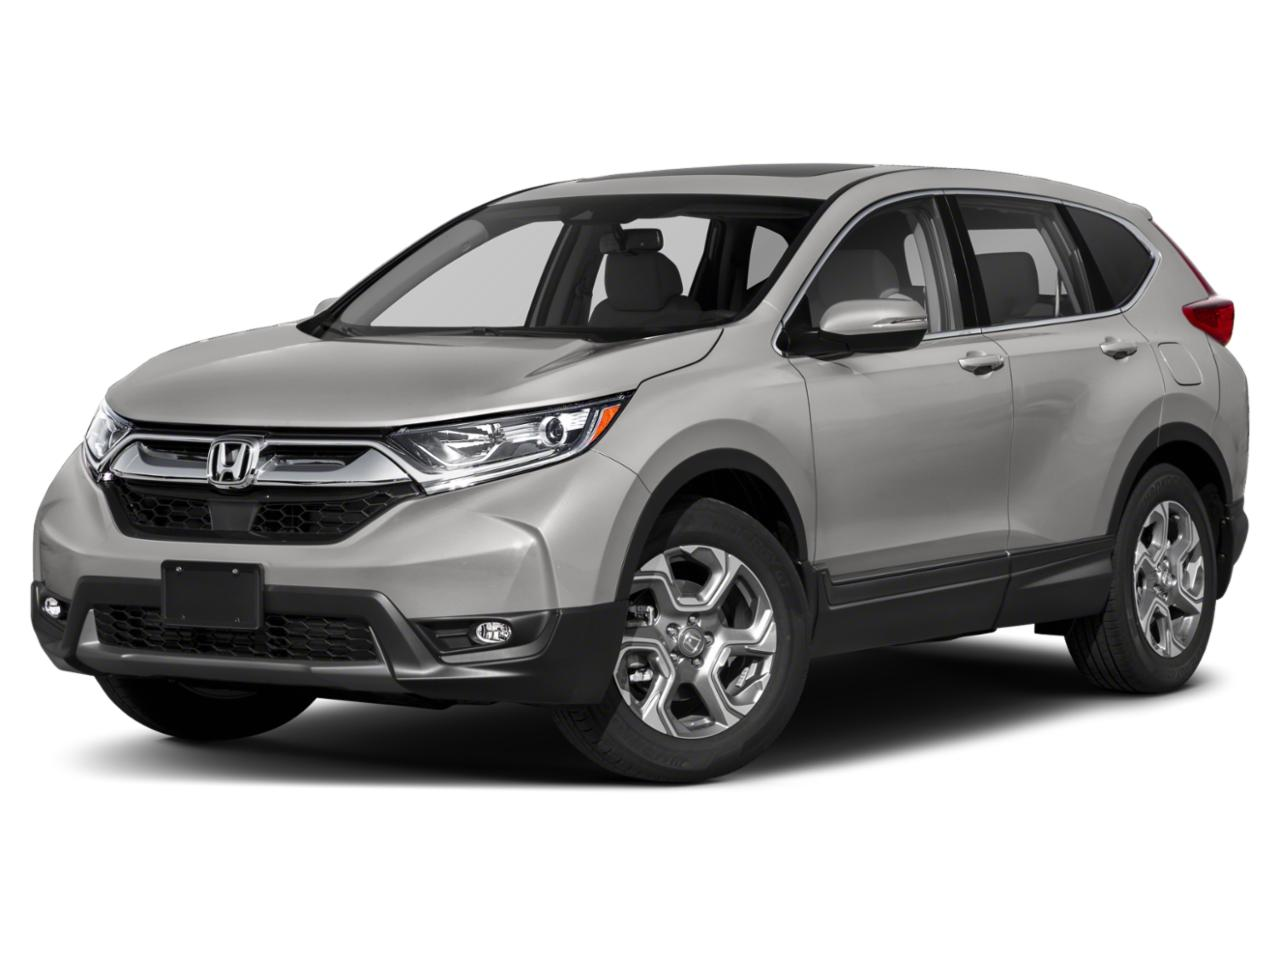 2019 Honda CR-V Vehicle Photo in TALLAHASSEE, FL 32304